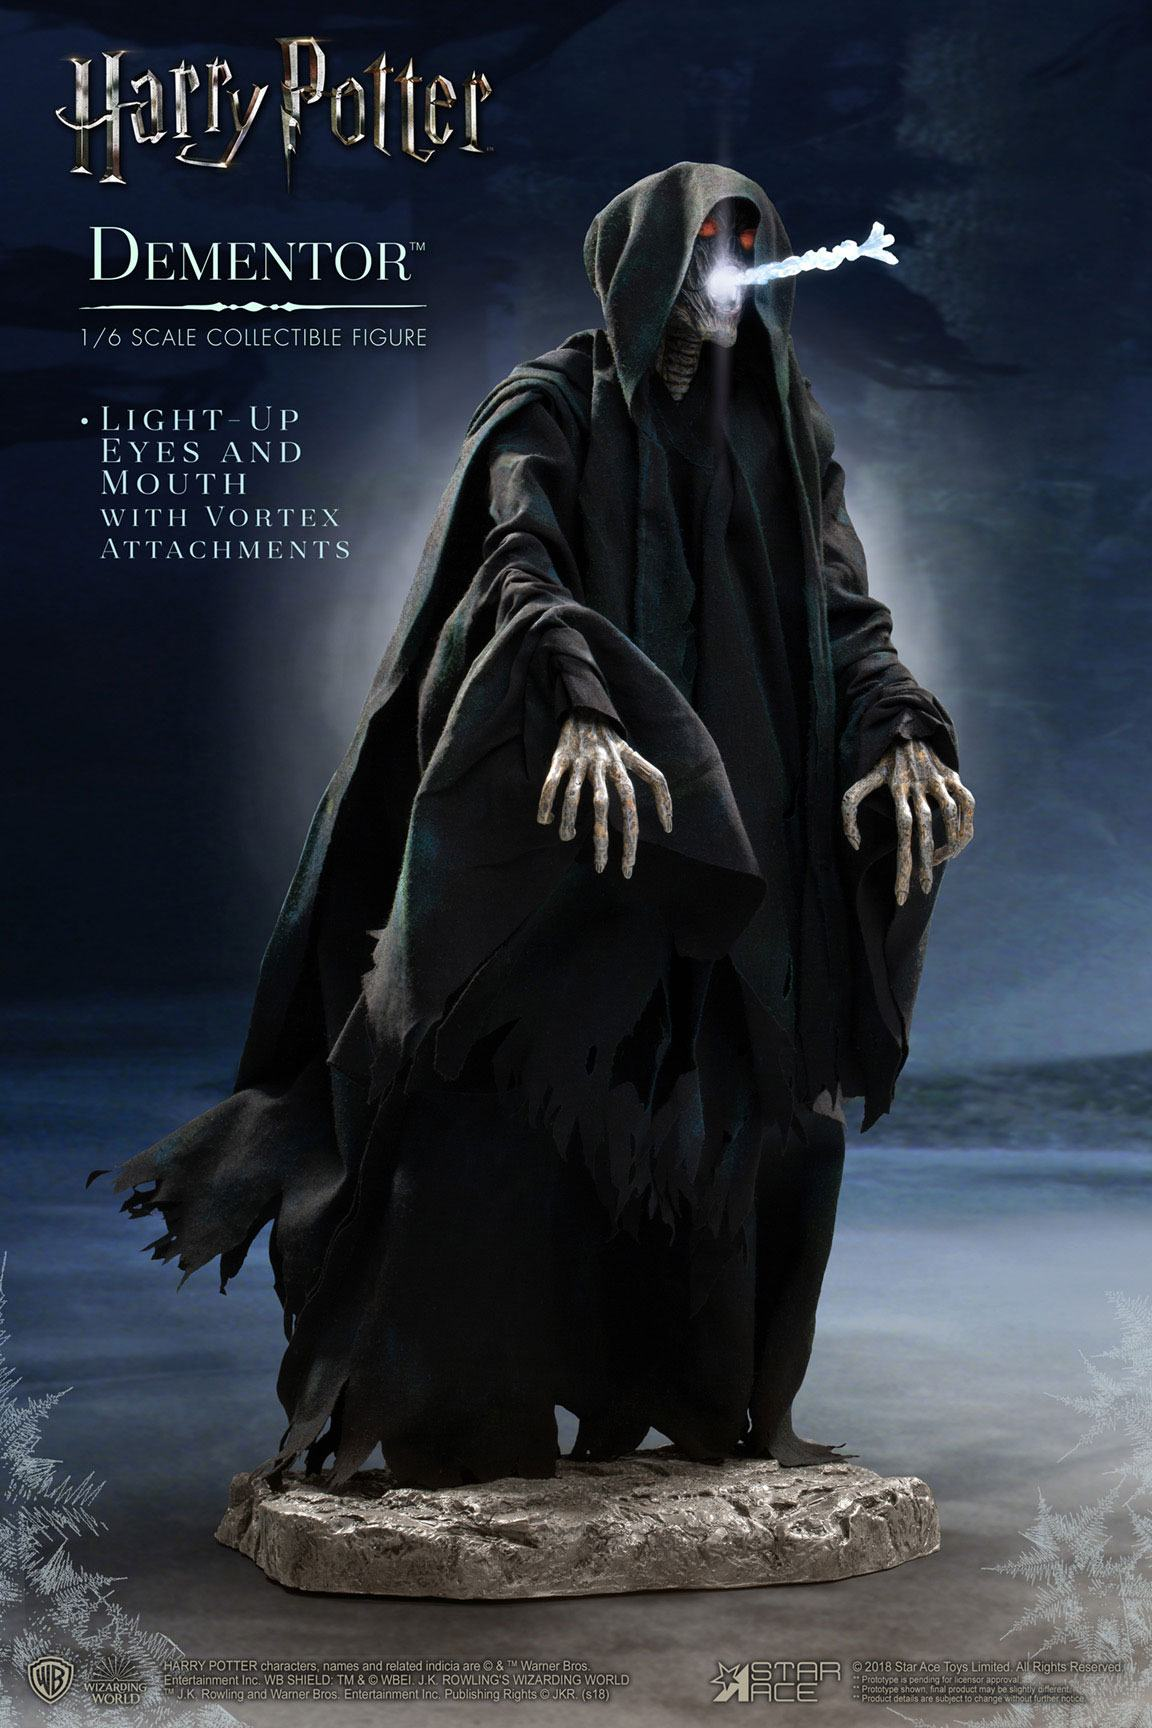 Harry Potter My Favourite Movie Action Figure 1/6 Dementor Deluxe Ver. 30 cm - Animegami Store